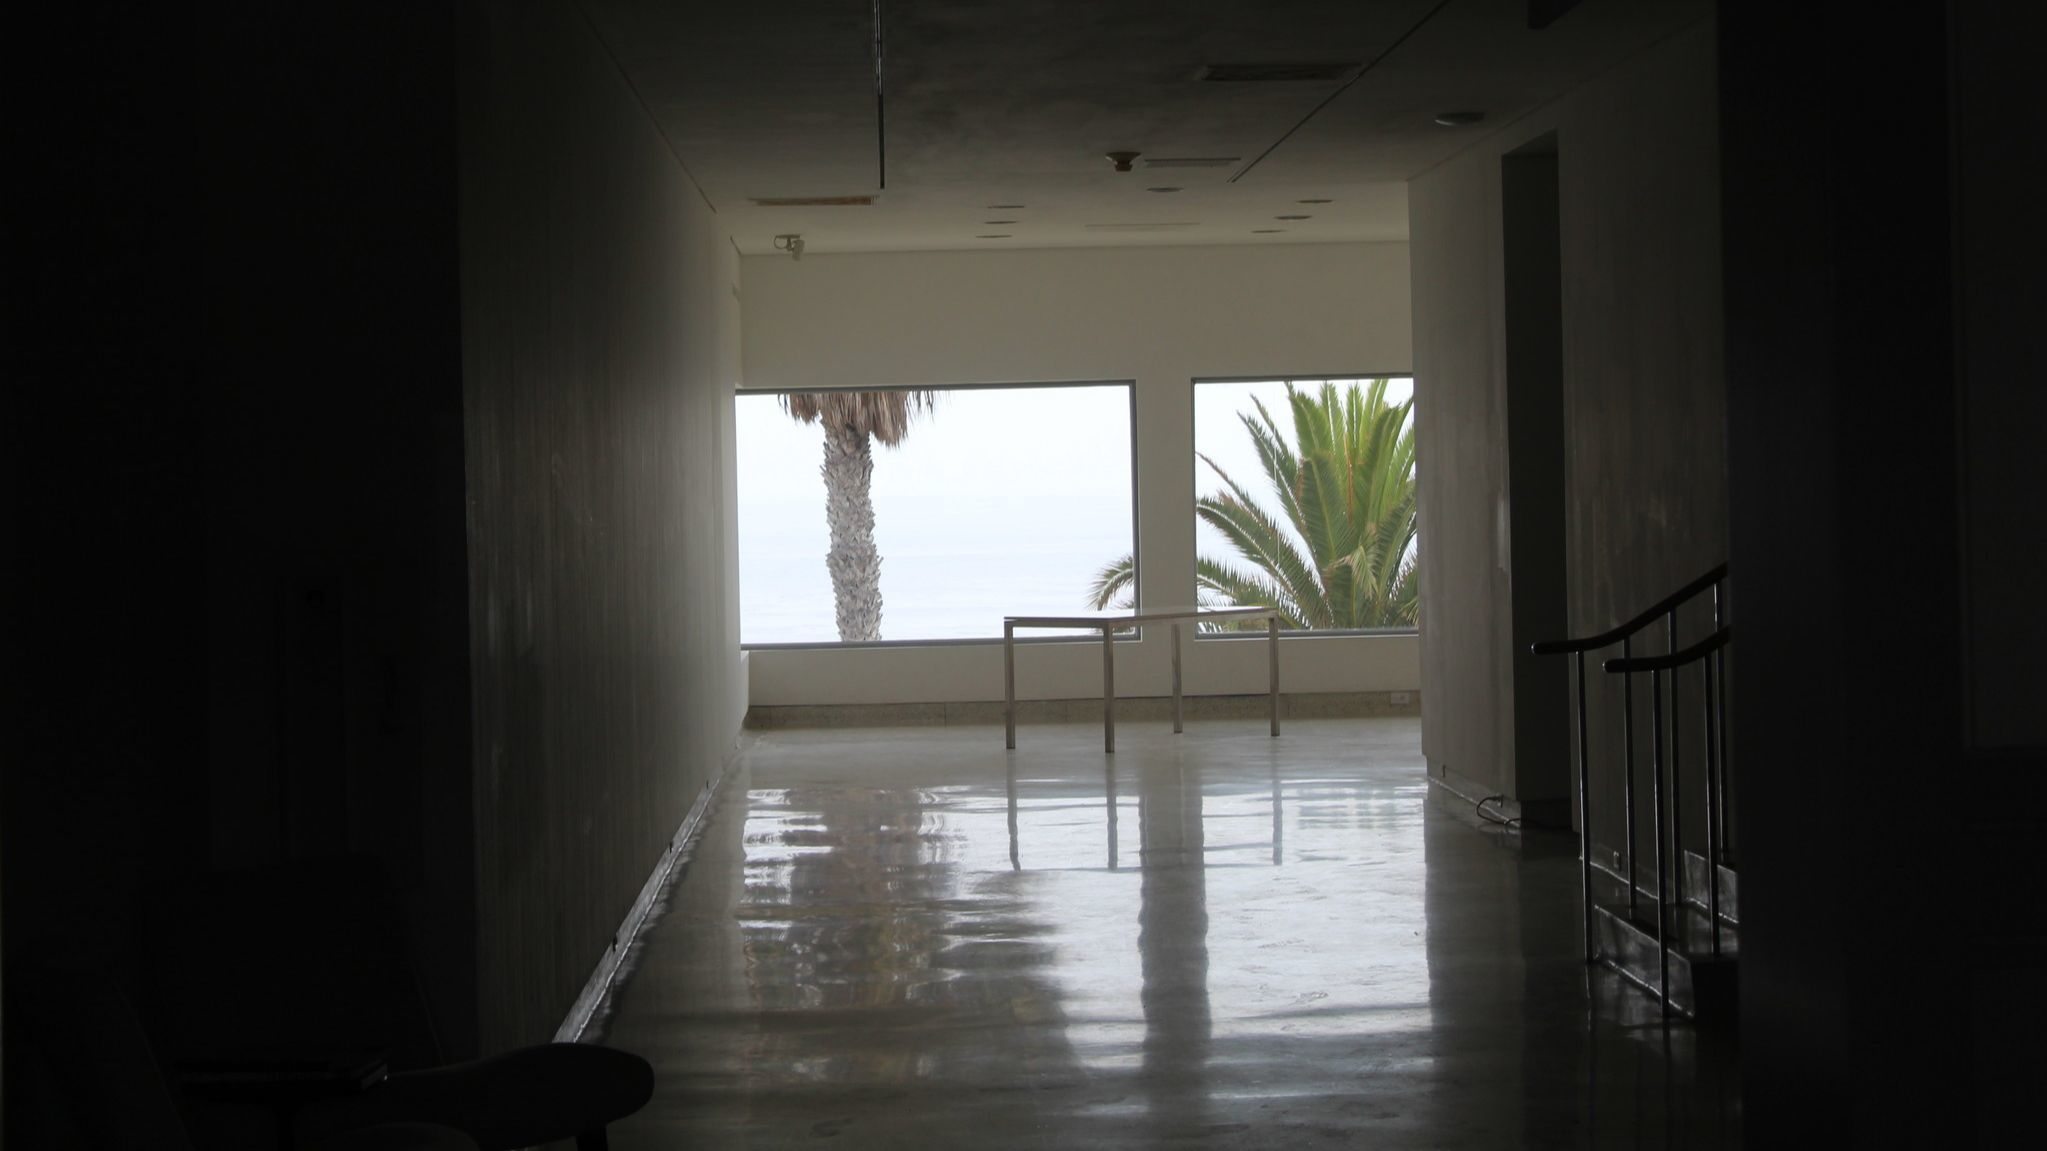 Looking inside the under-renovation Museum of Contemporary Art San Diego, psychic mediums say they detect undeniable signs of the building's former occupant.